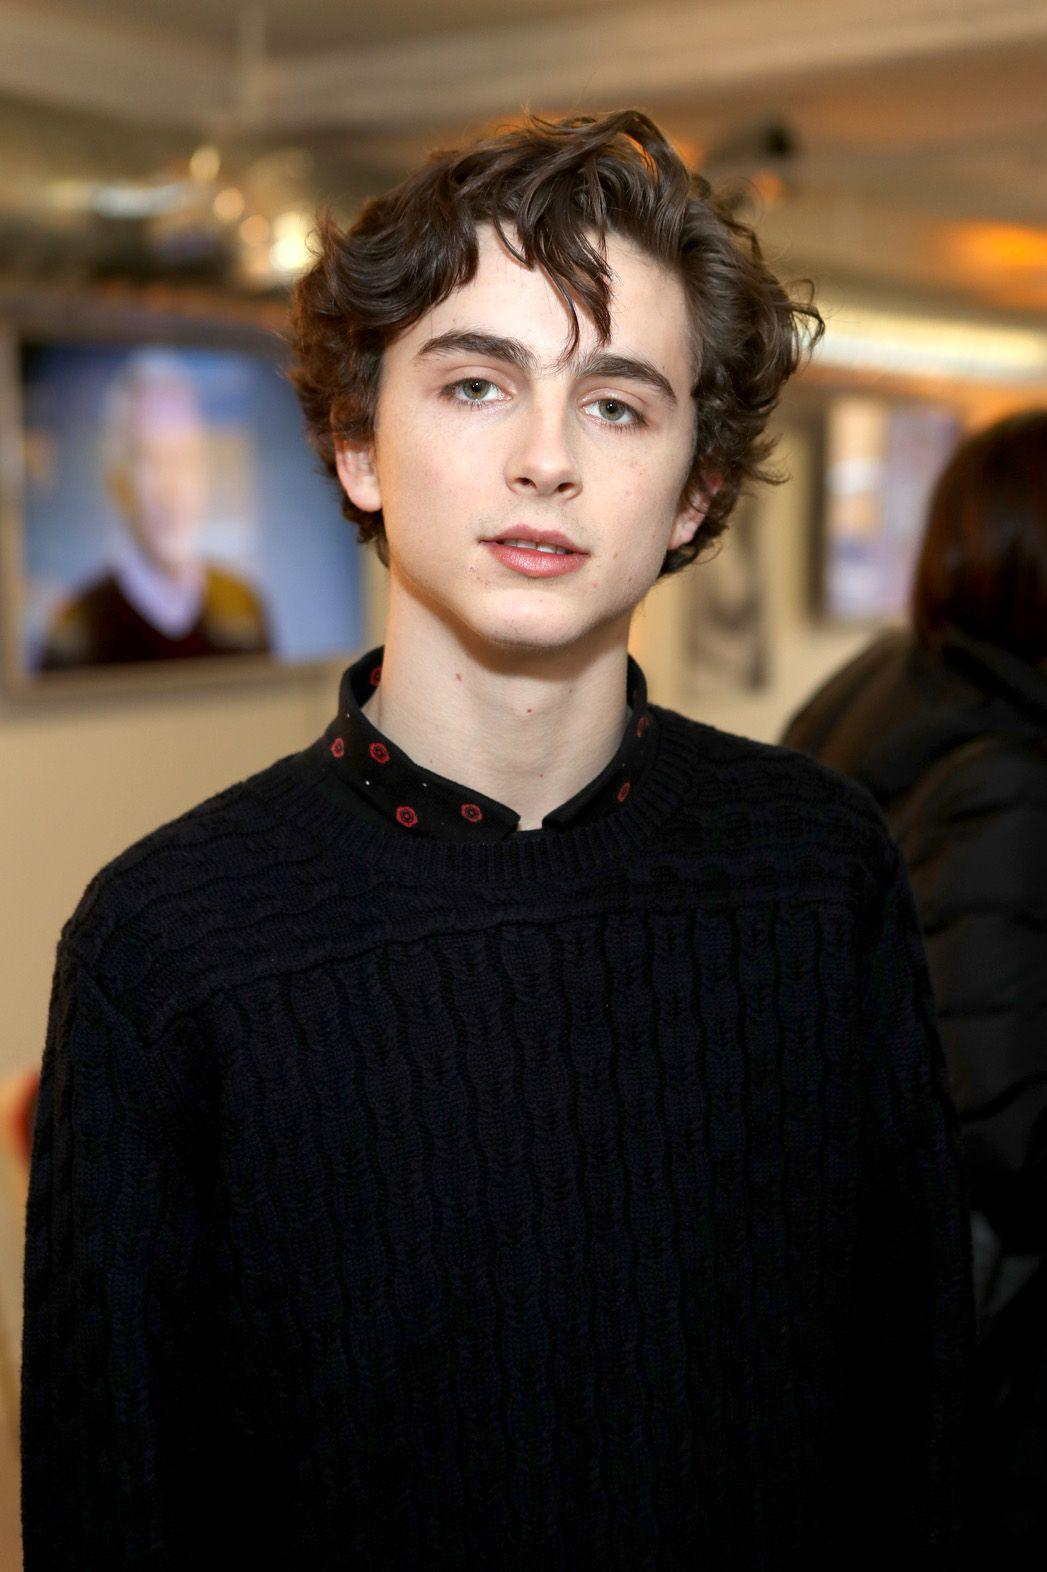 Timothee Chalamet photo 30 of 33 pics, wallpaper - photo #975208 ...